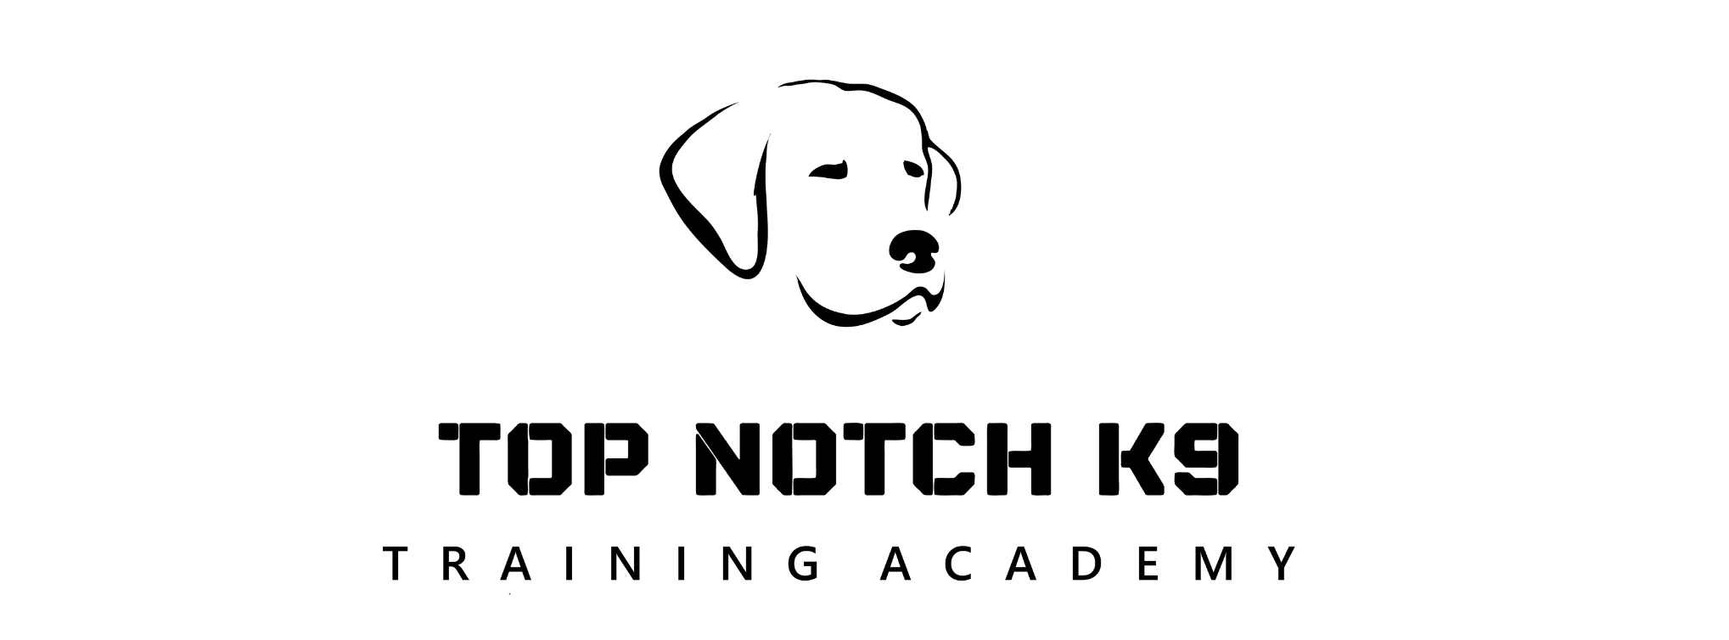 TOP NOTCH K9 ACADEMY